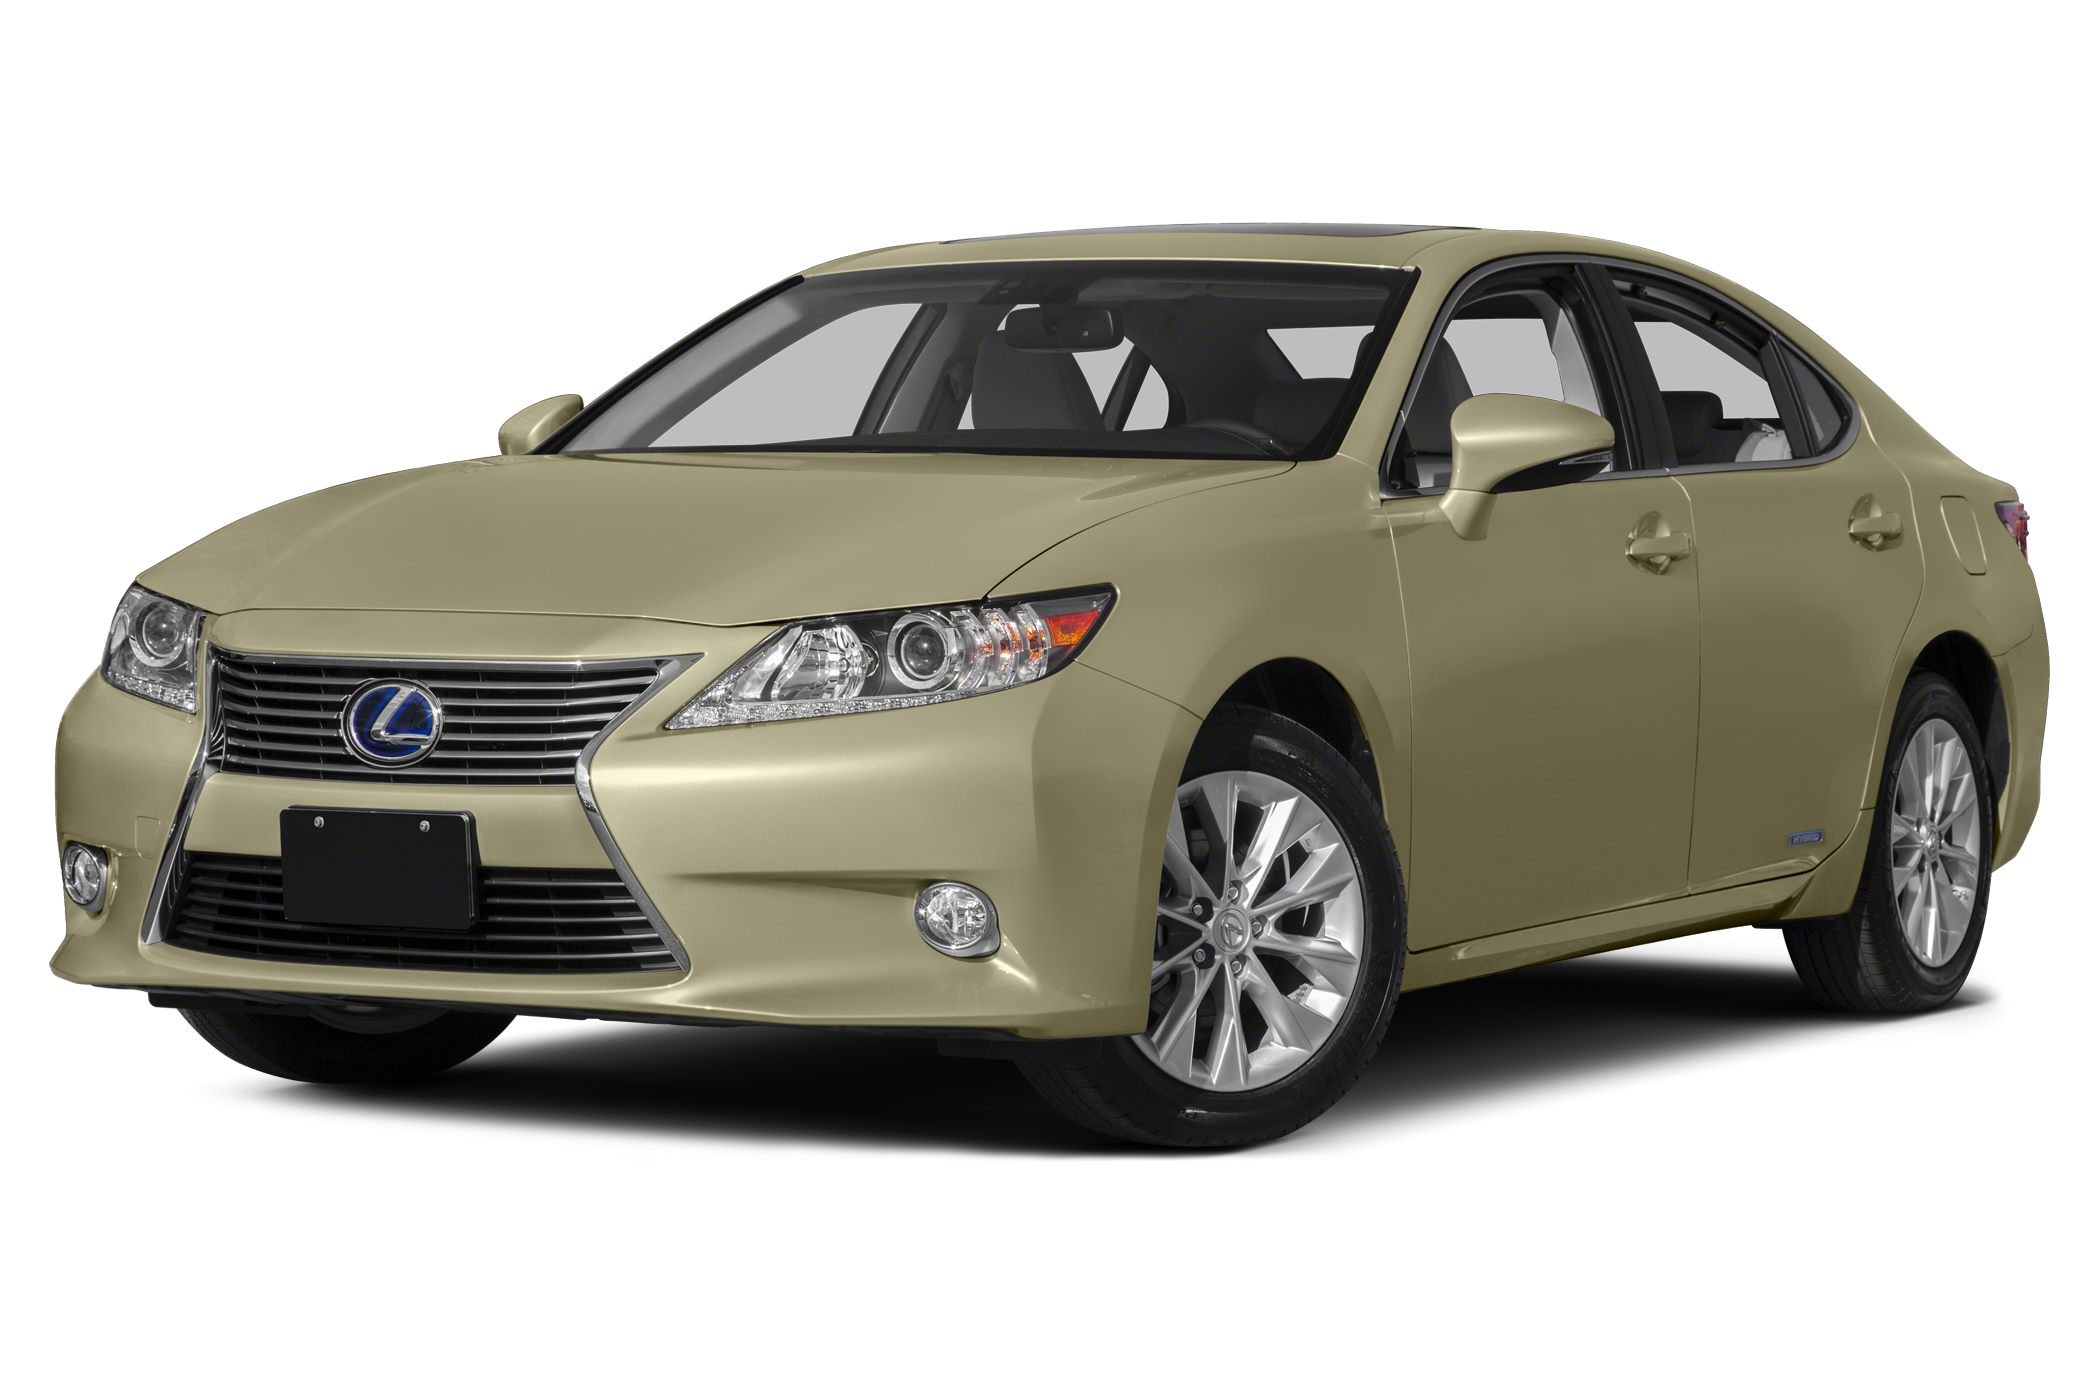 2015 Lexus ES 300h Base Sedan for sale in Oakland for $47,463 with 0 miles.